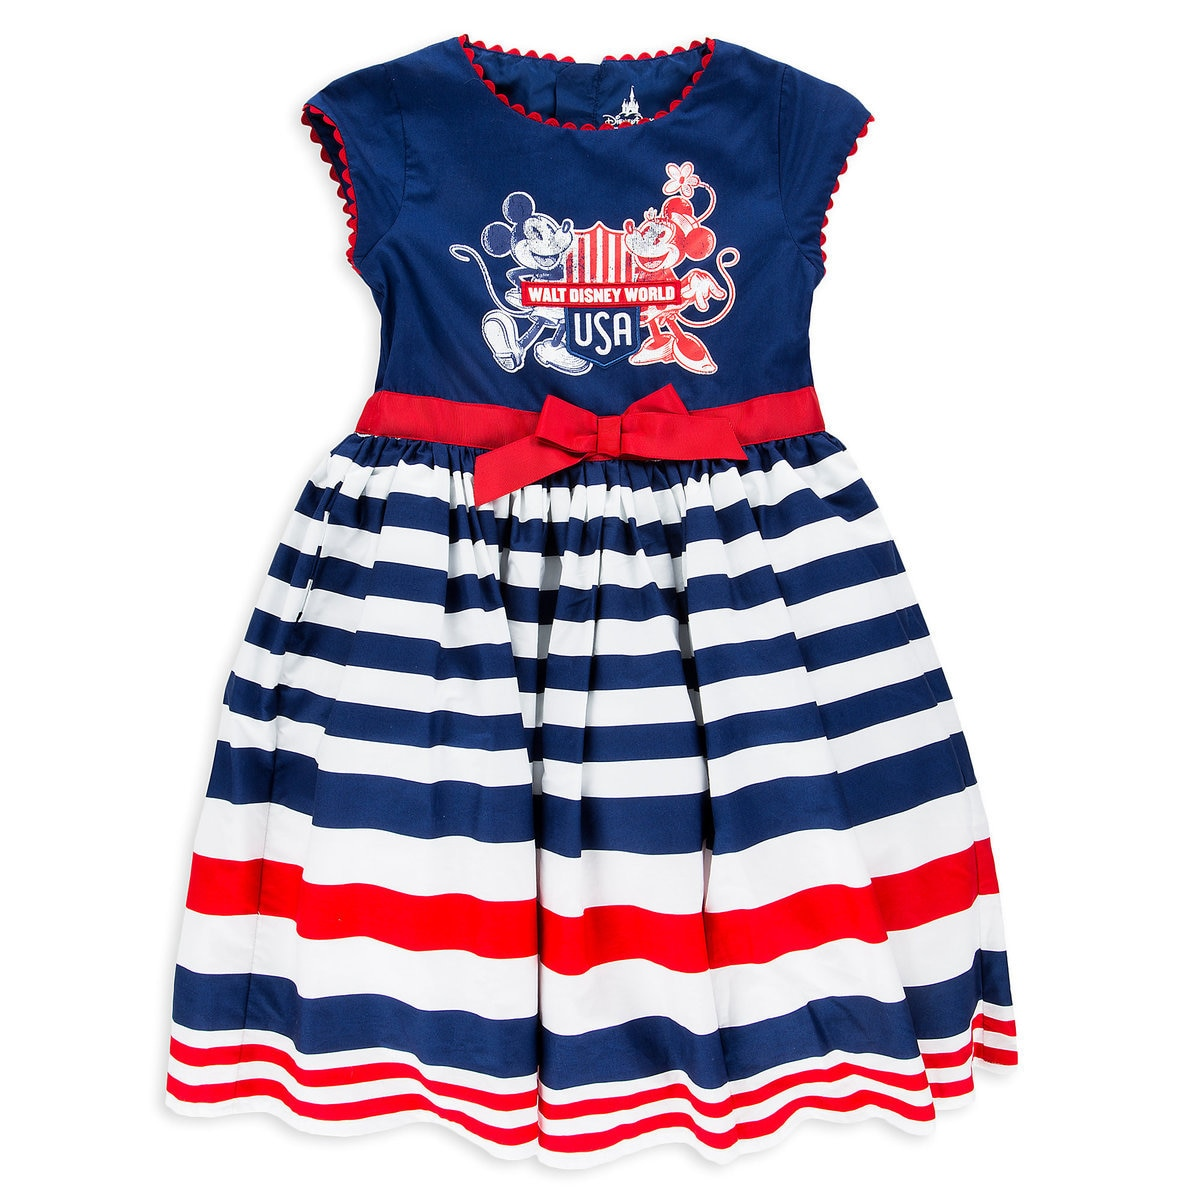 e87f44f75 Product Image of Mickey and Minnie Mouse Americana Woven Dress for Girls -  Walt Disney World